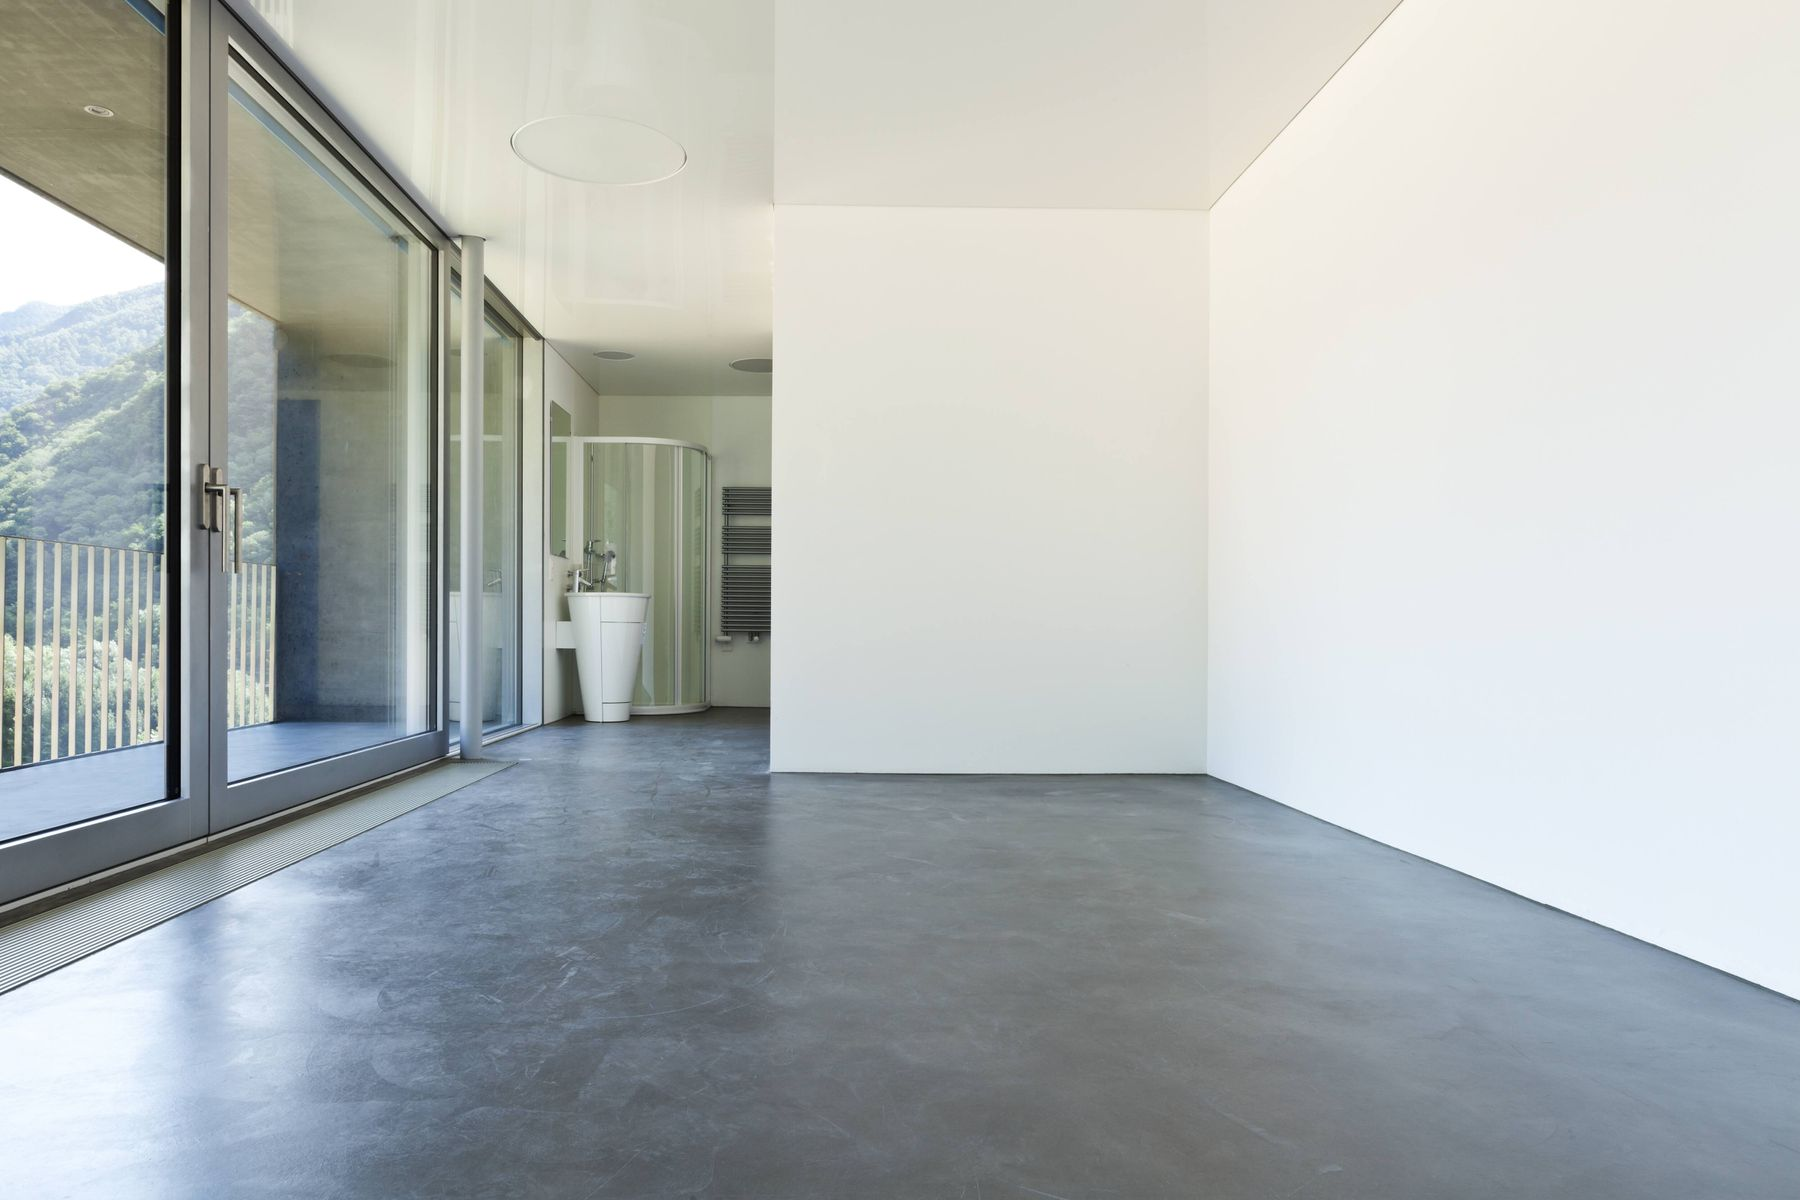 Dirty concrete floors? Worry not! Grab these things and get to cleaning now!